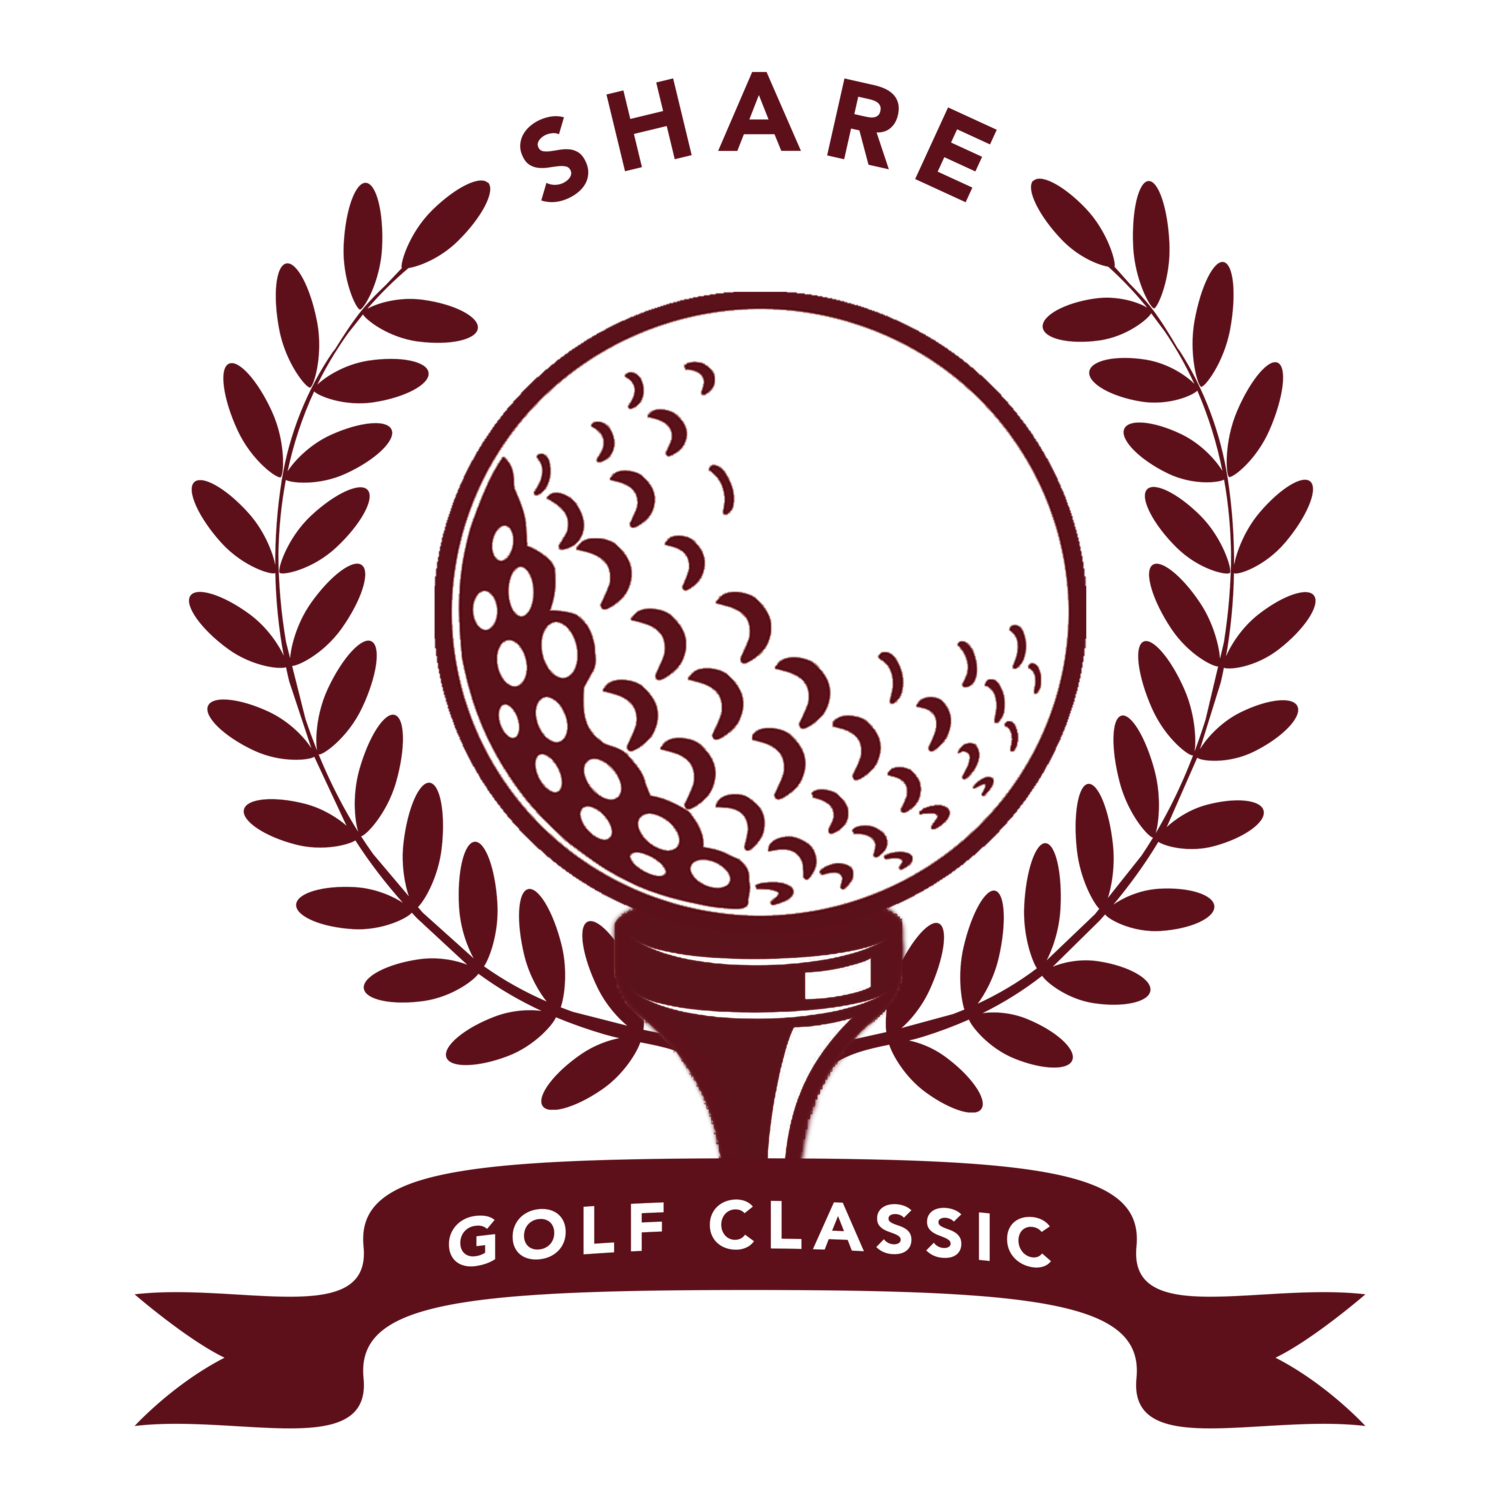 SHARE Golf Classic